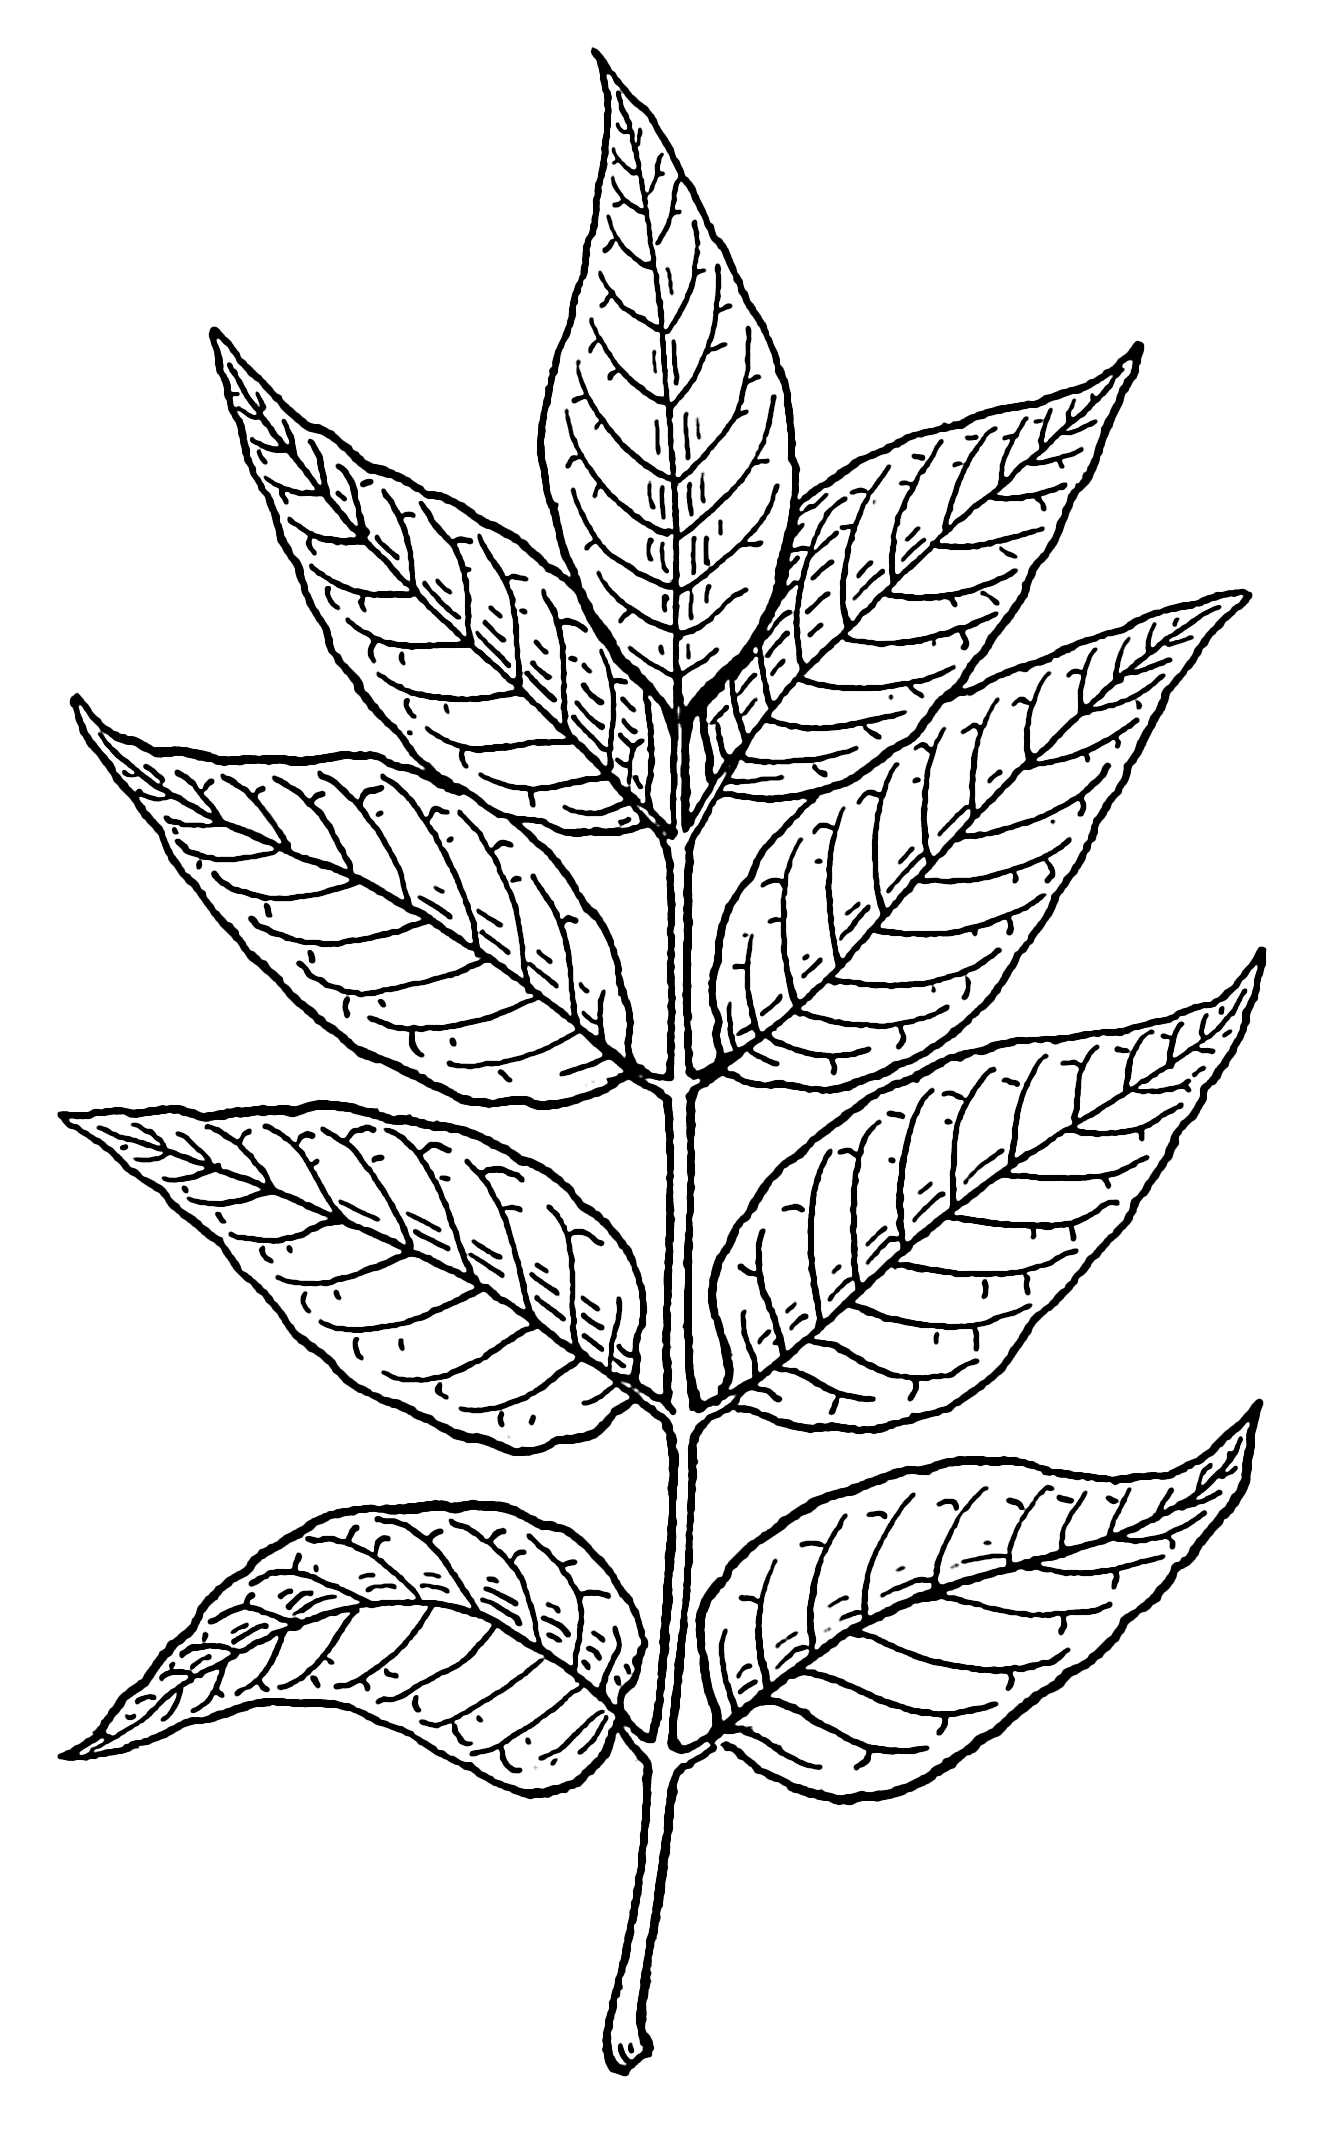 Flower Leaf Line Drawing : File ash leaves psf wikimedia commons